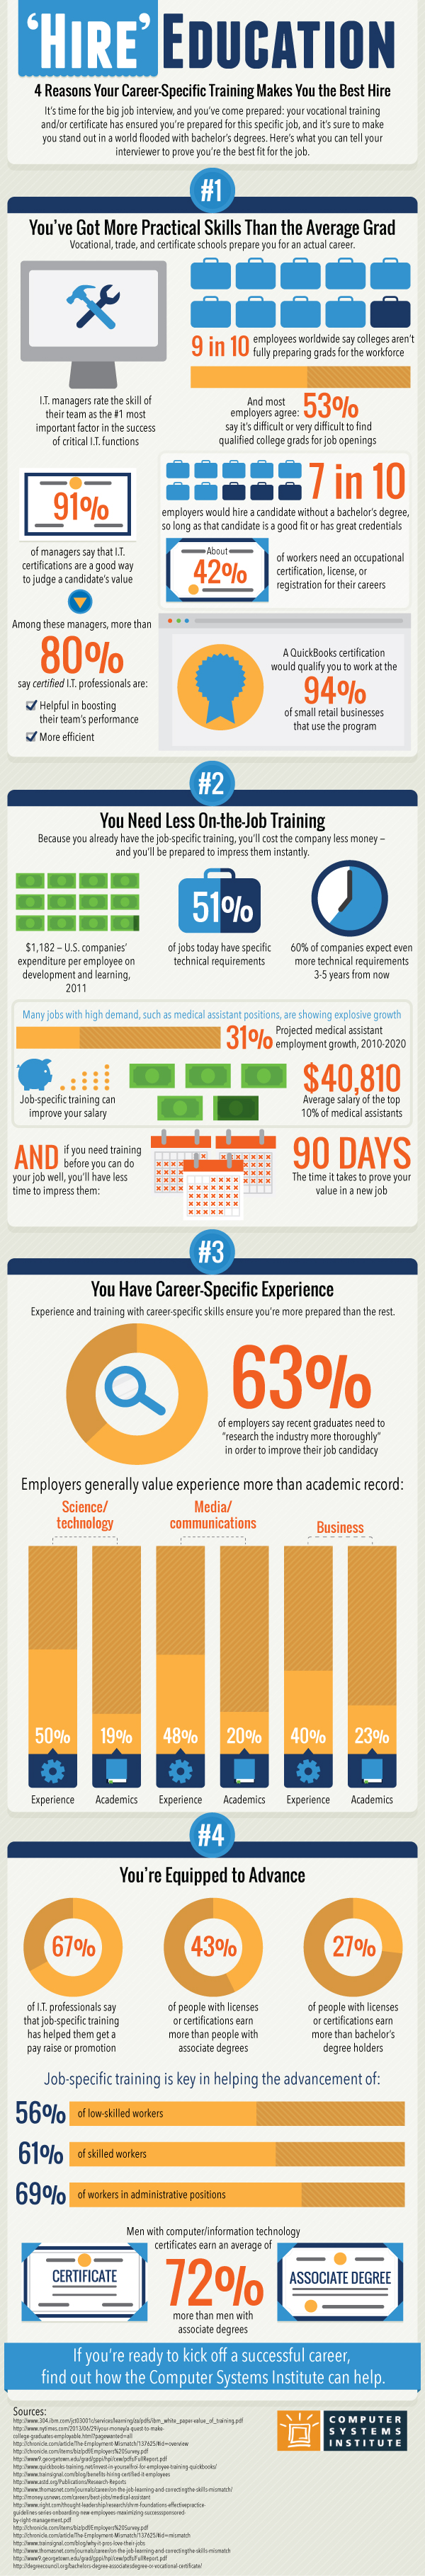 CSI-Now-Hire-Education-Infographic-600px